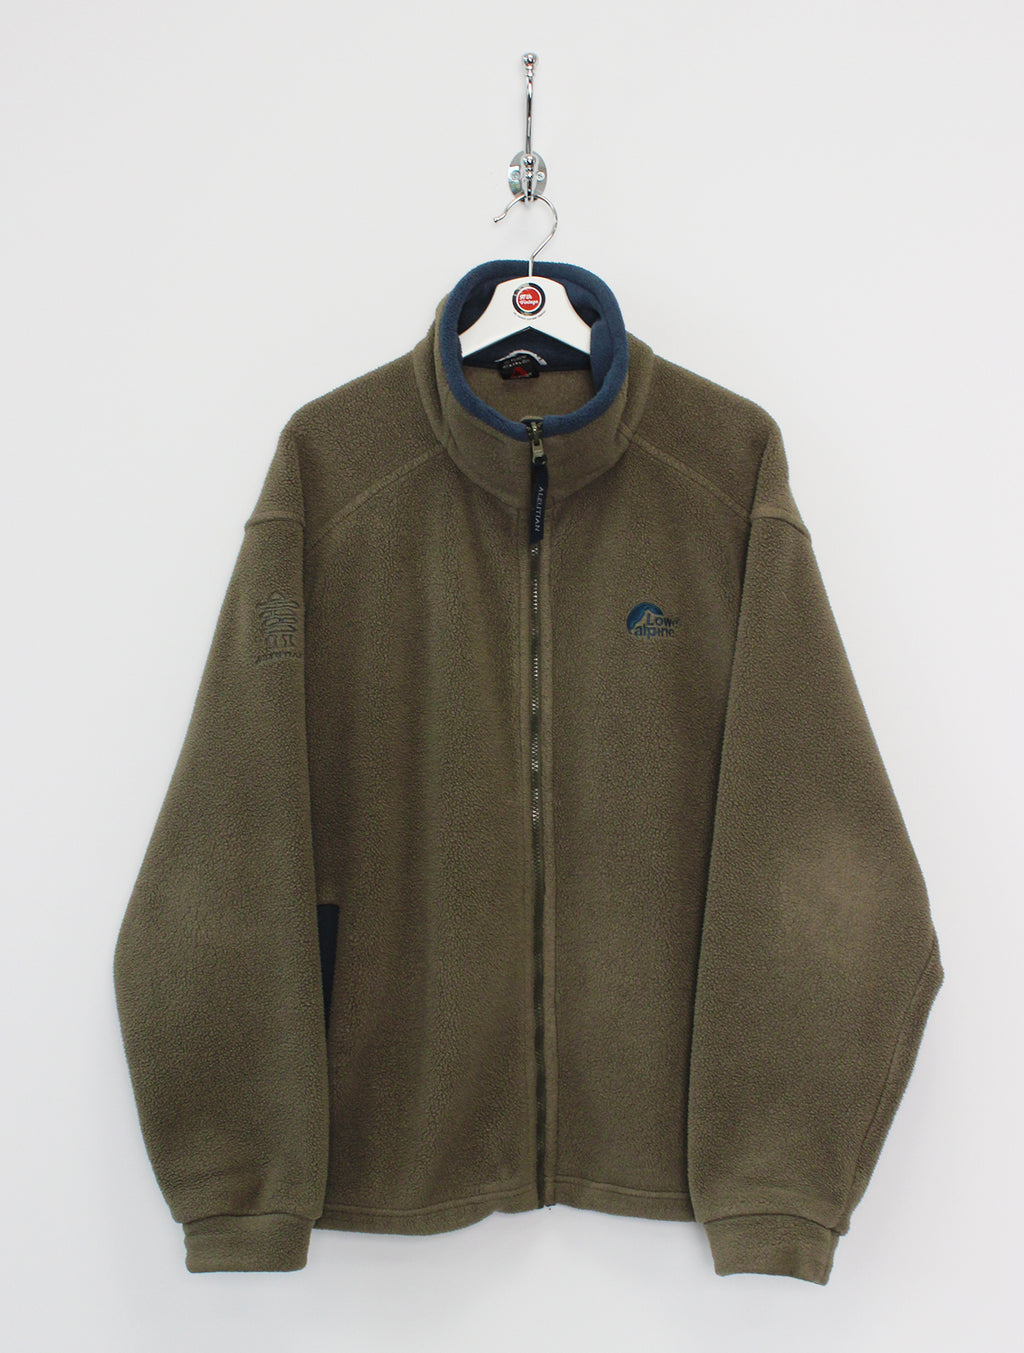 Lowe Alpine Polartec Fleece (L)